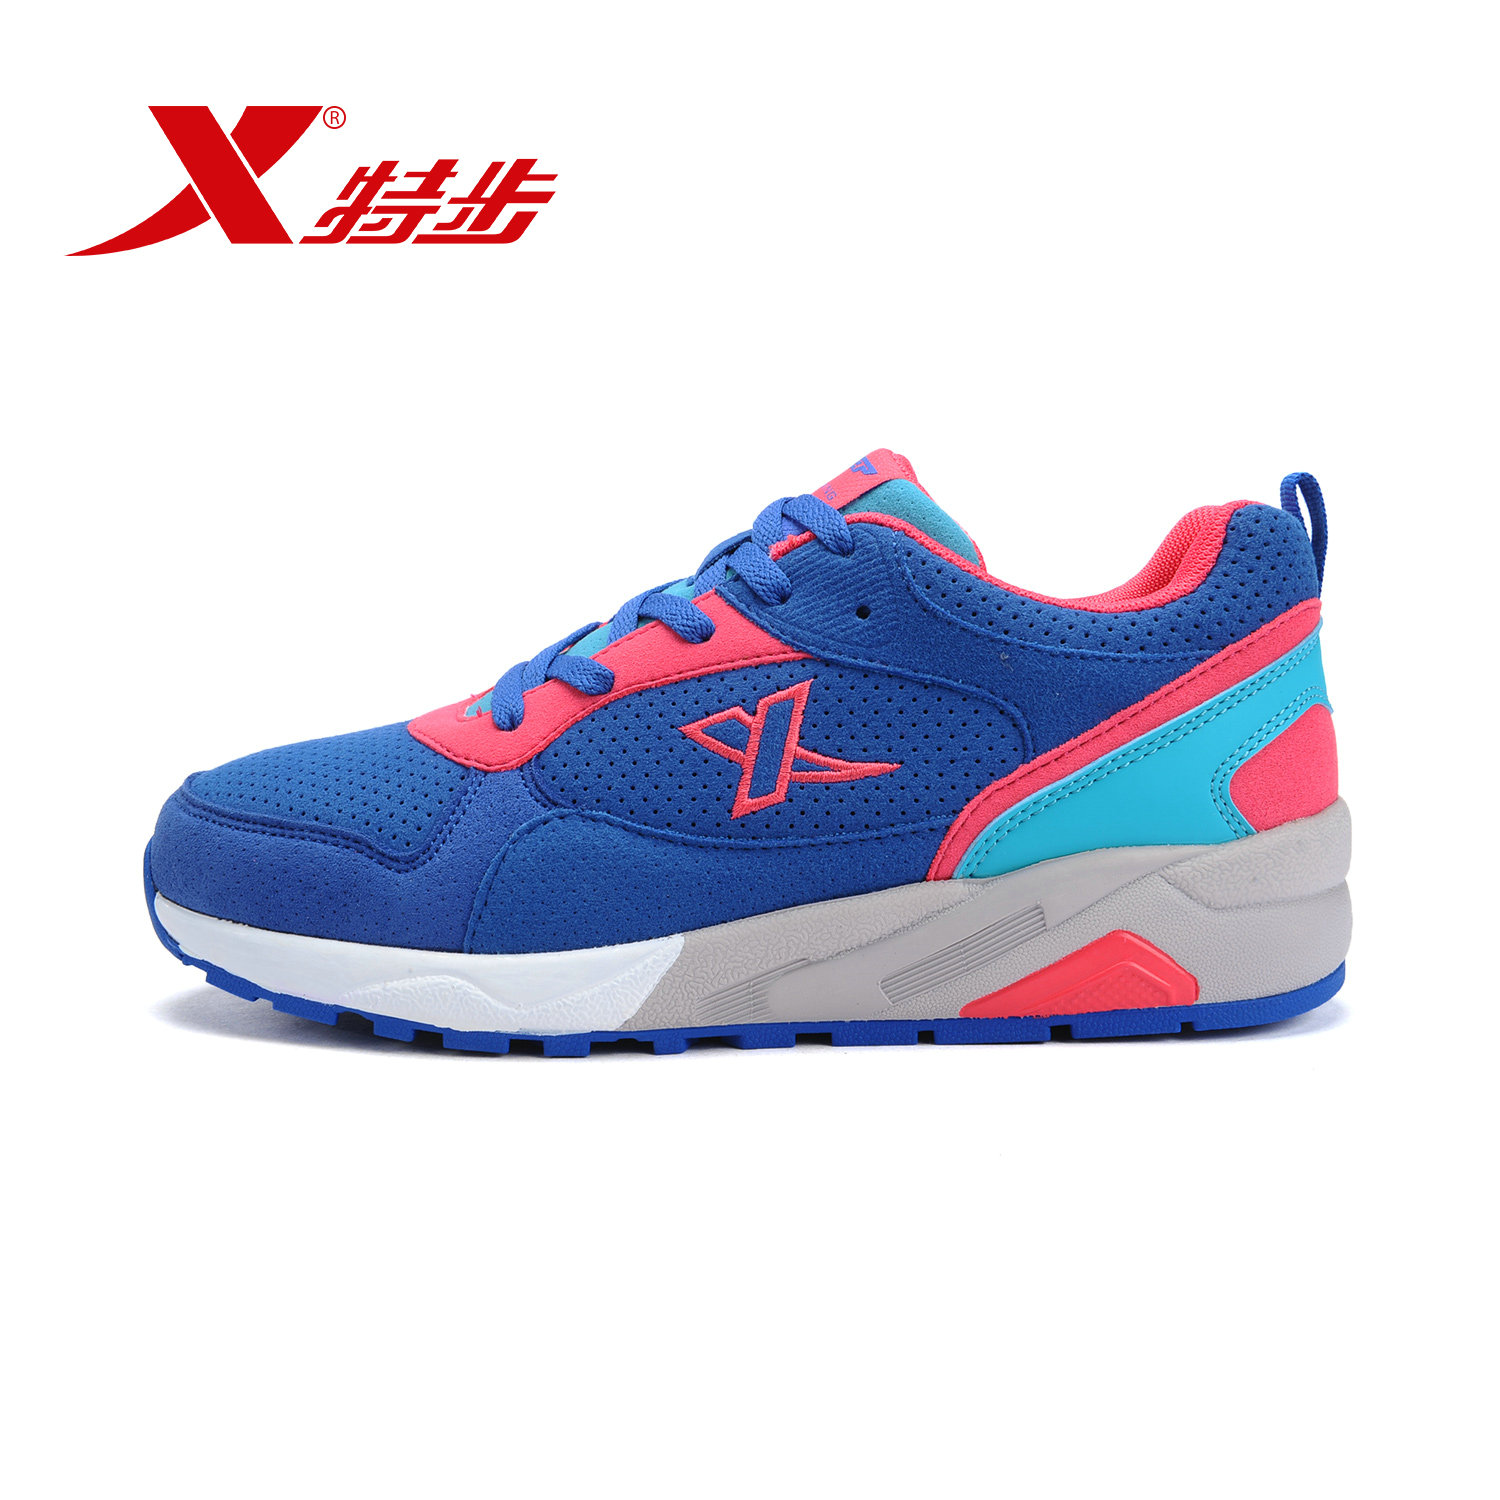 f697620712c Get Quotations · Xtep shoes sneakers shoes autumn new ladies shoes sneakers  running shoes female models comfortable and stylish